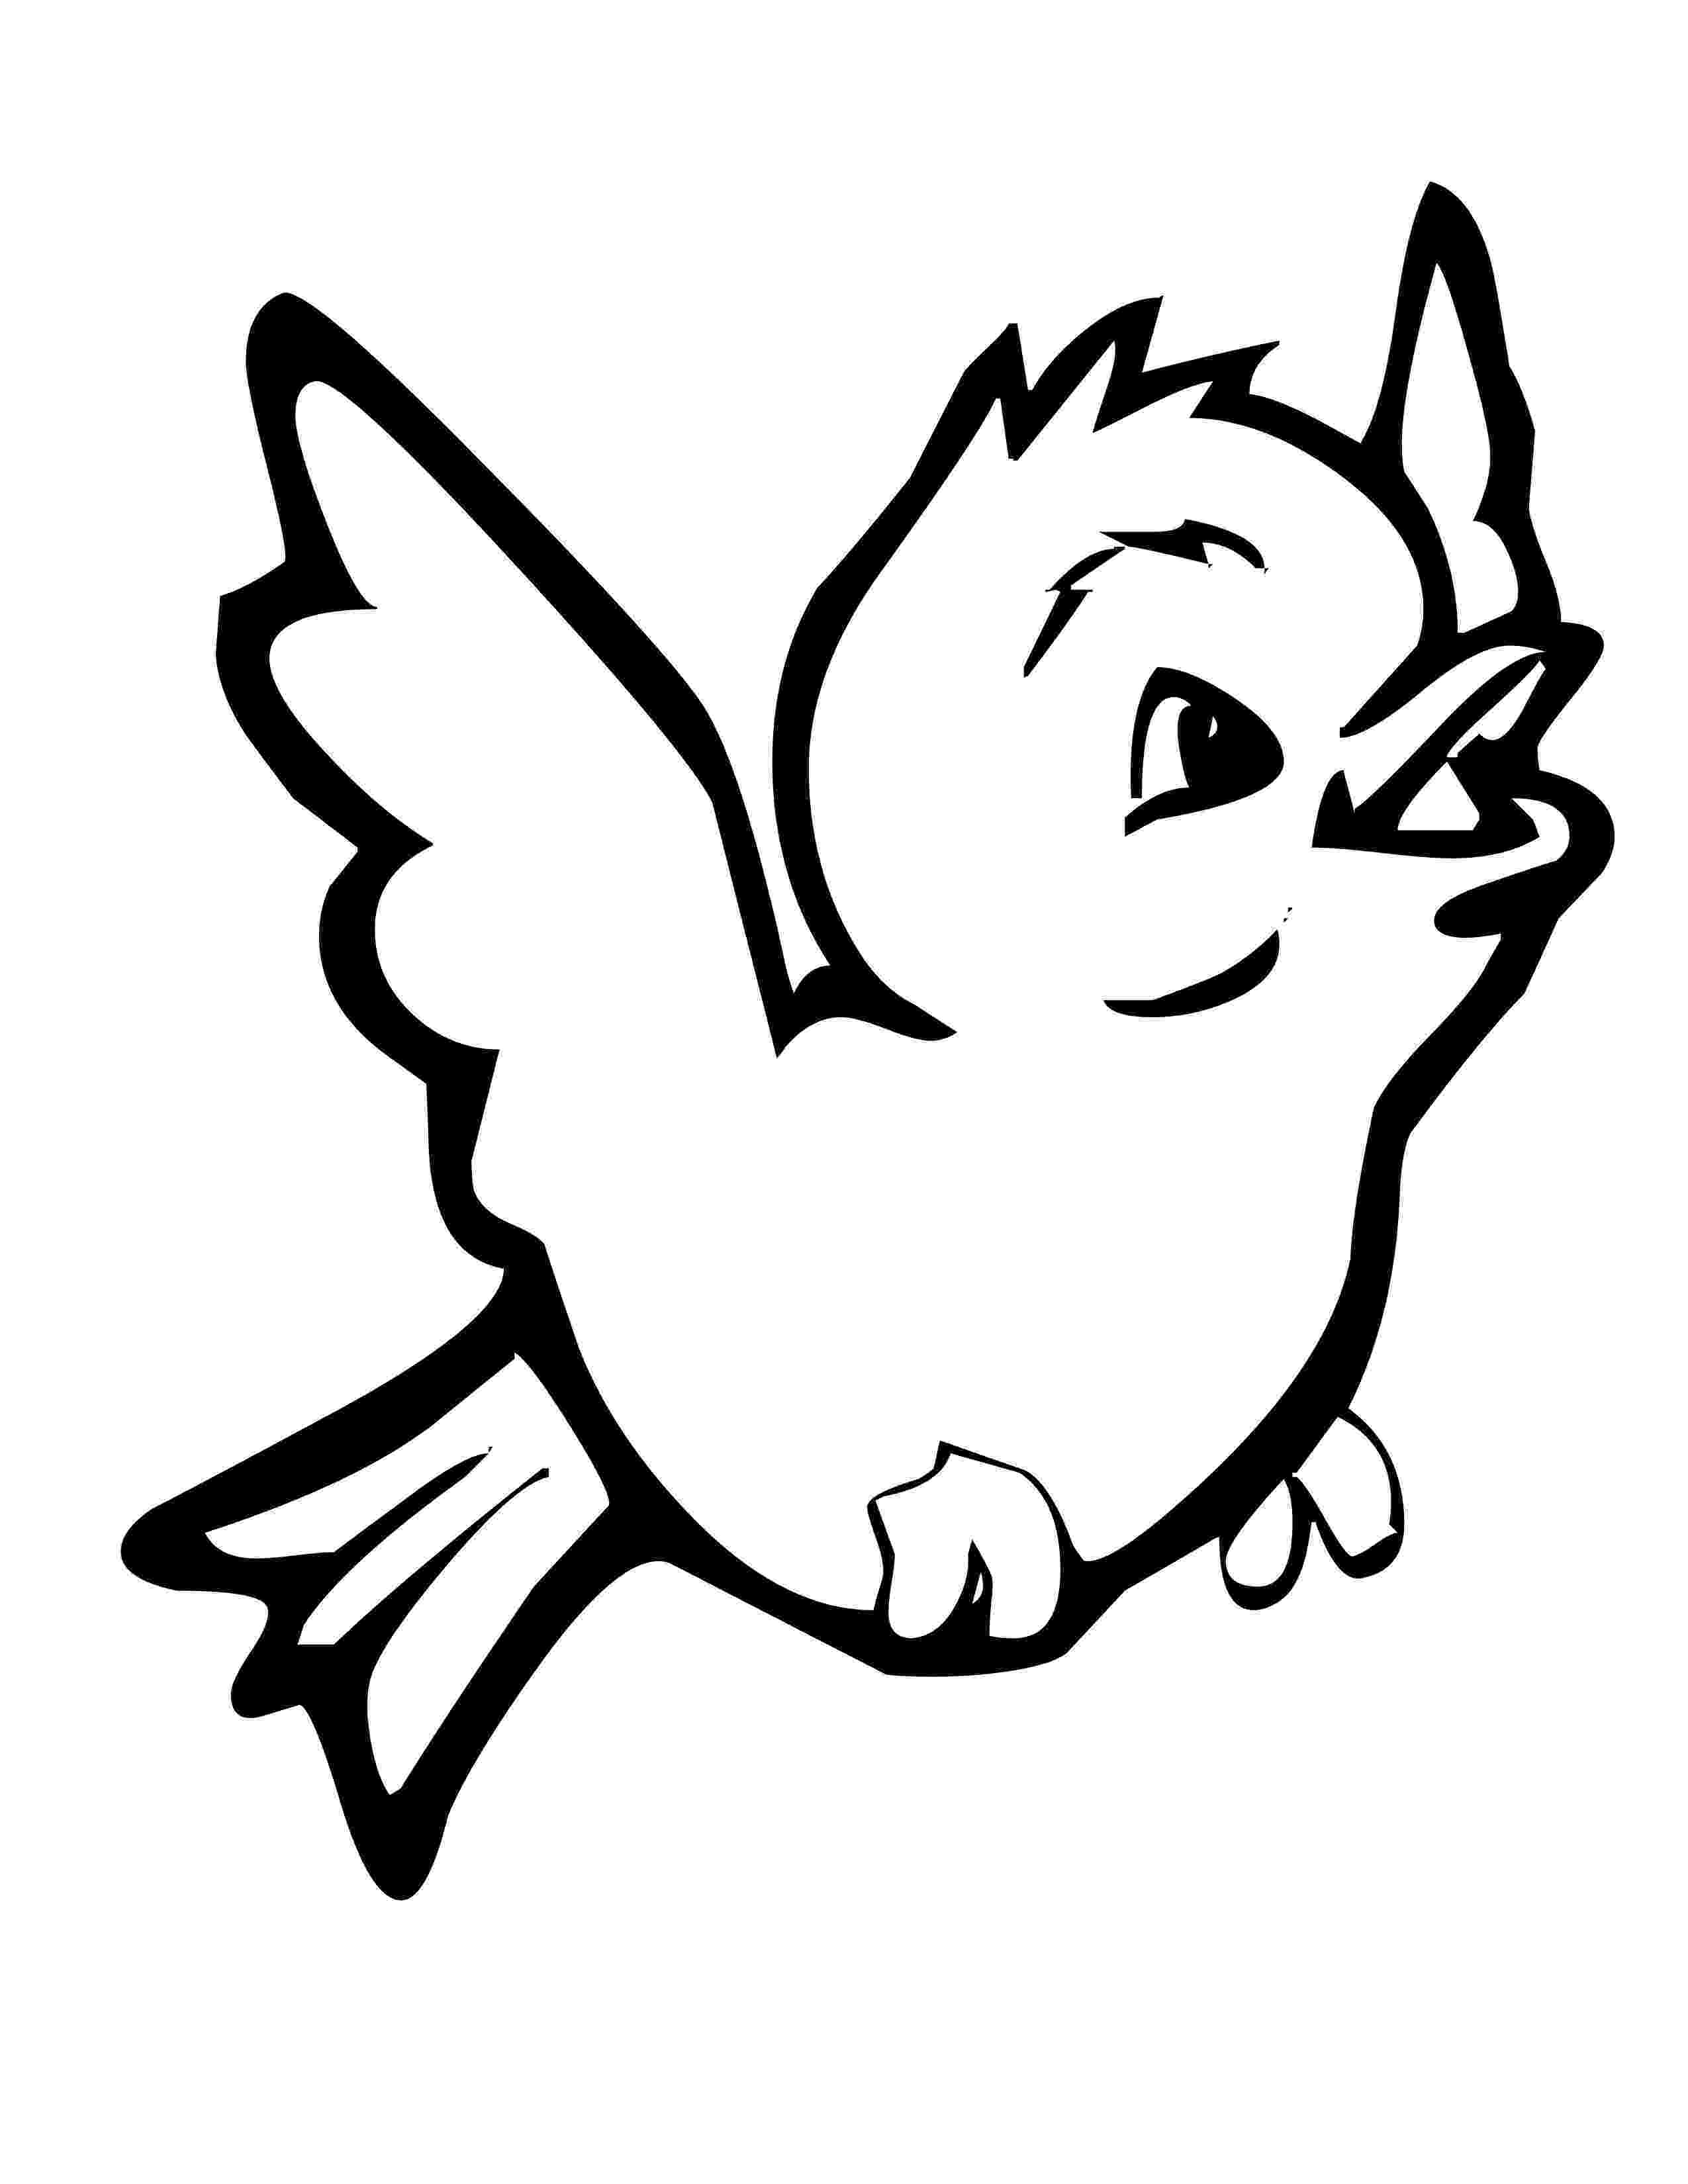 images of birds for colouring birds coloring pages of birds images colouring for